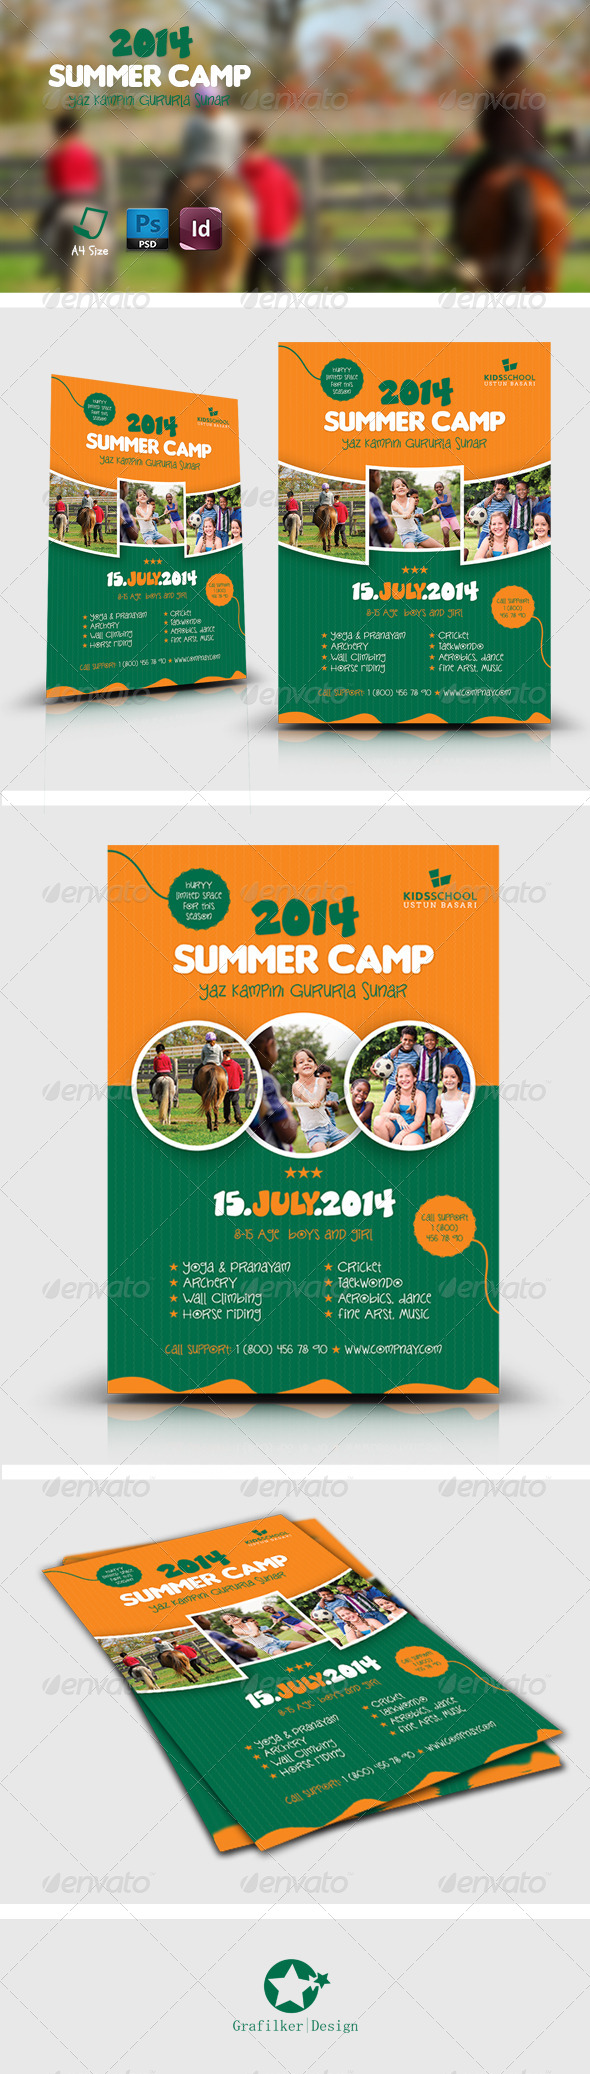 GraphicRiver Summer Camp Flyer Templates 7547750